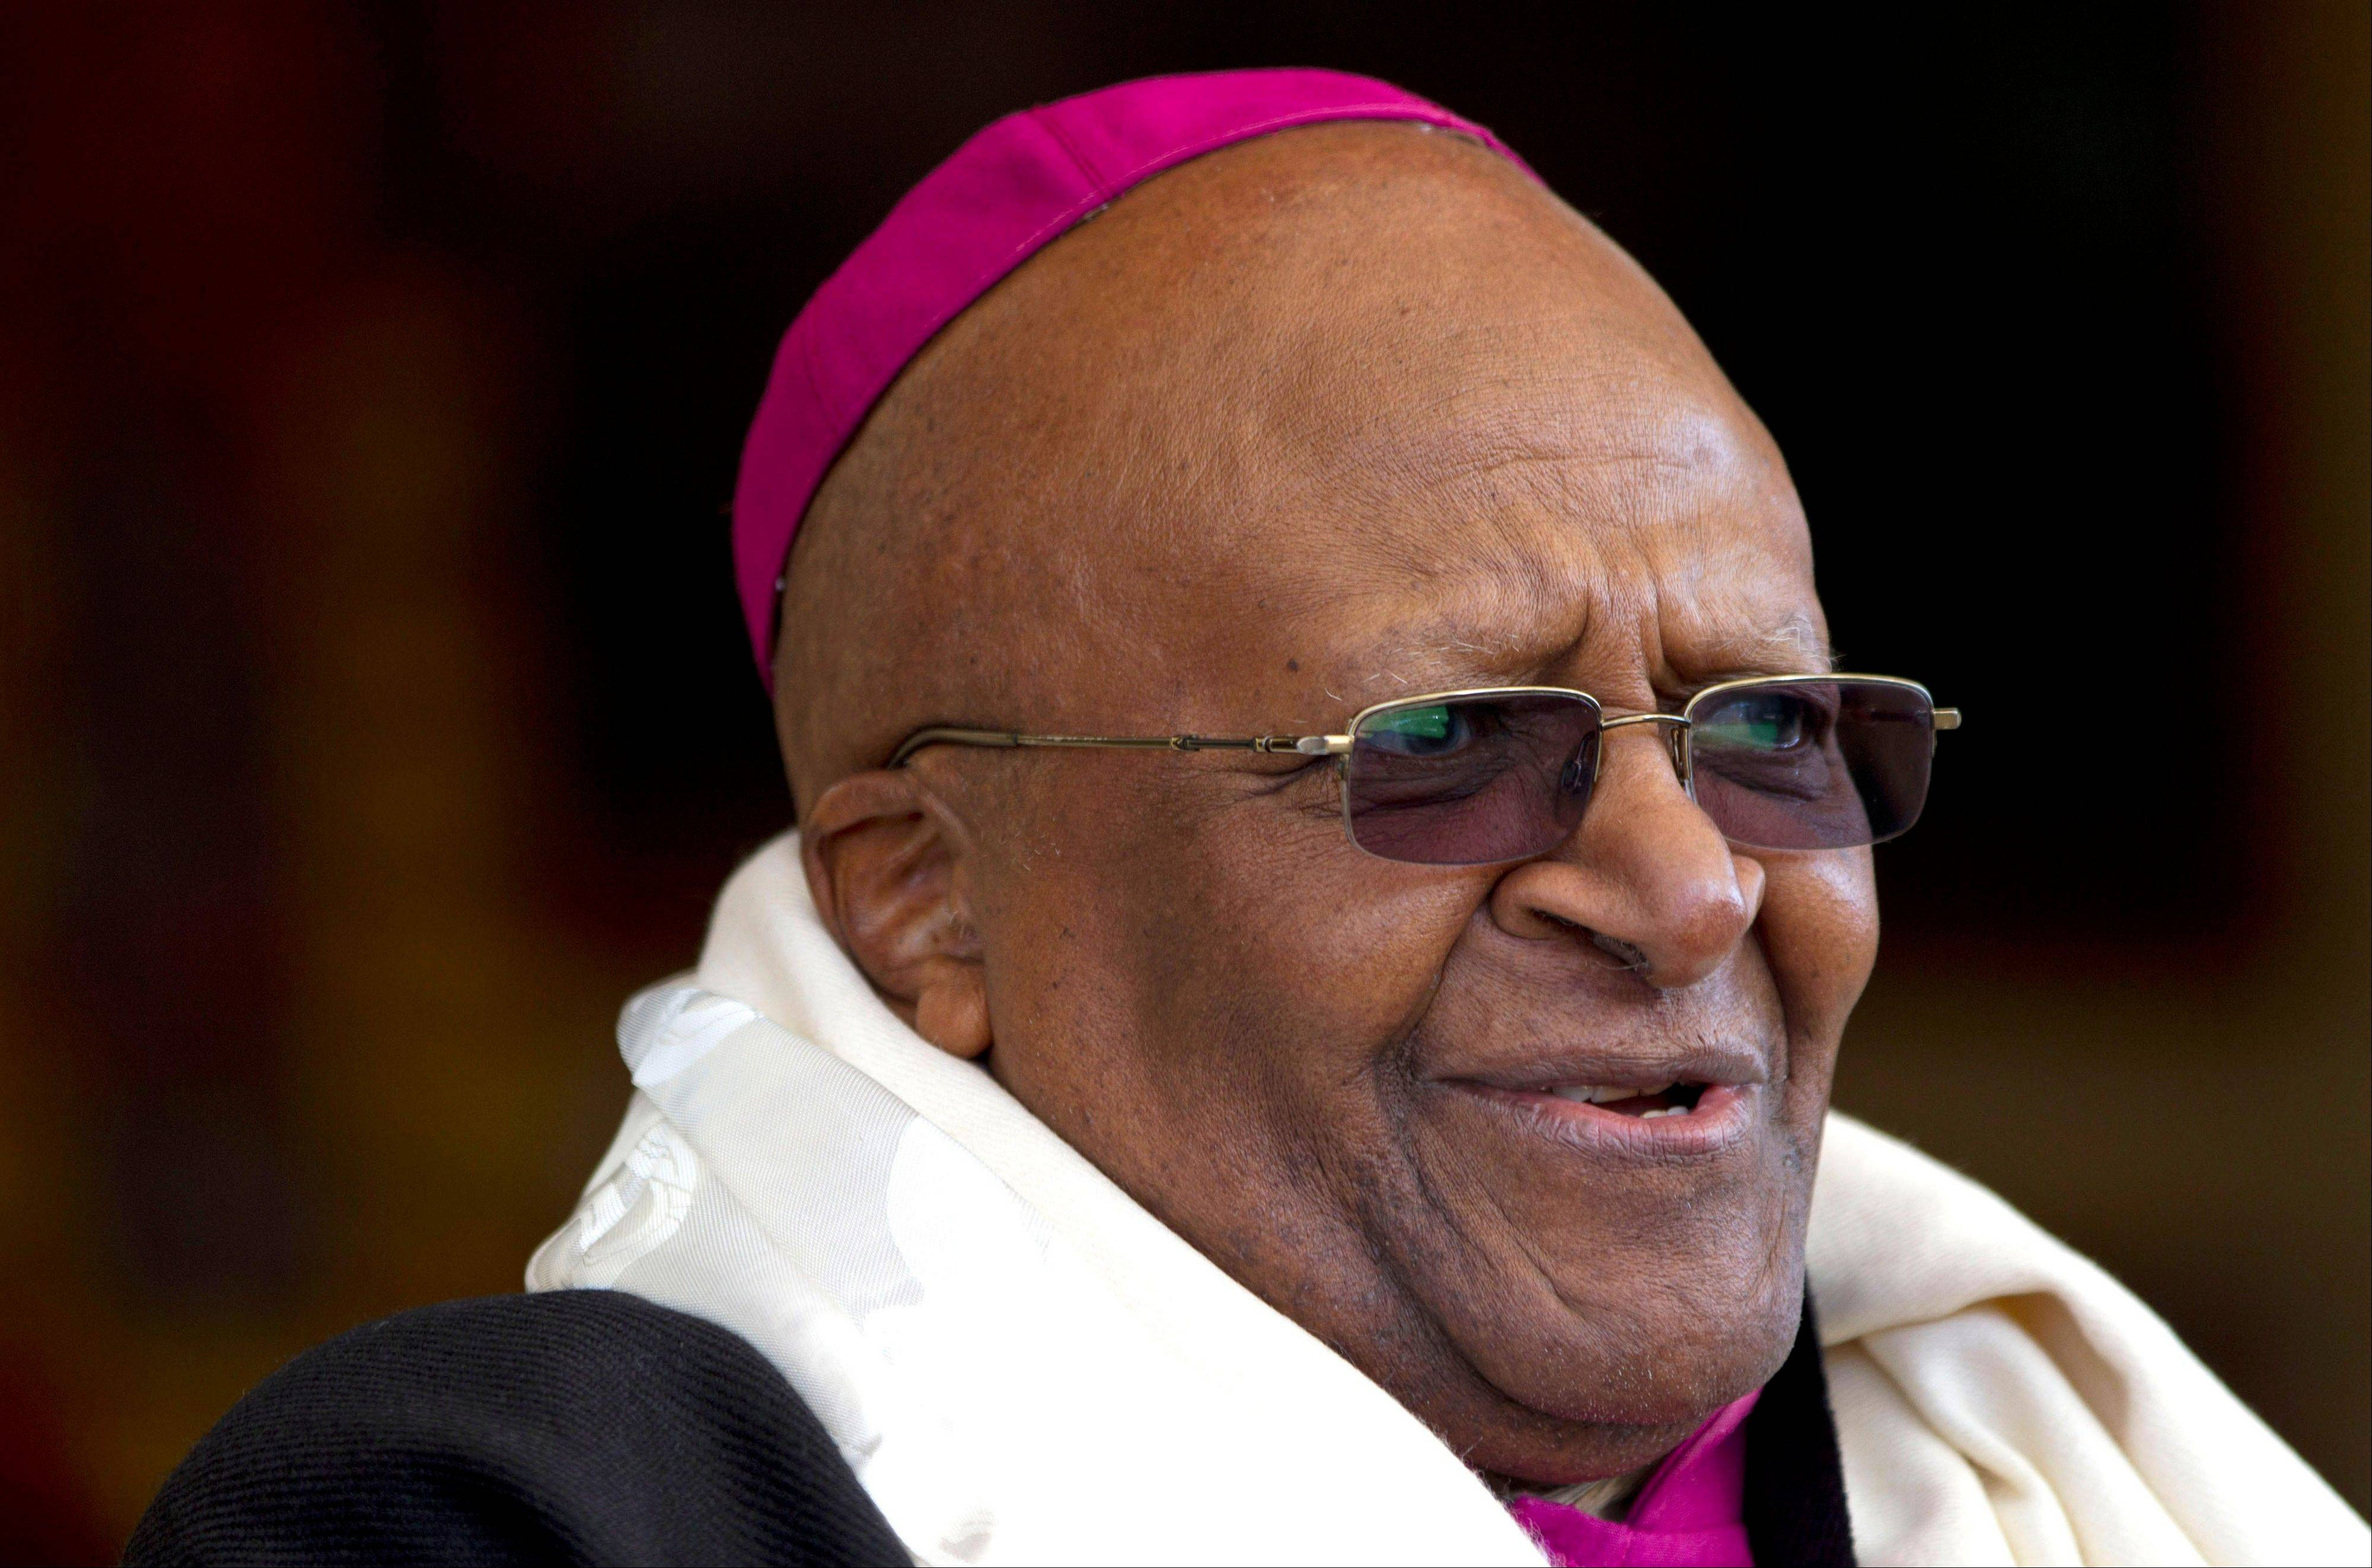 Archbishop Desmond Tutu in an op-ed piece in the Observer Sunday Sept. 2, 2012 has called for Tony Blair and George Bush to be hauled before an international criminal court and delivered a damning critique of the physical and moral devastation caused by the Iraq war.